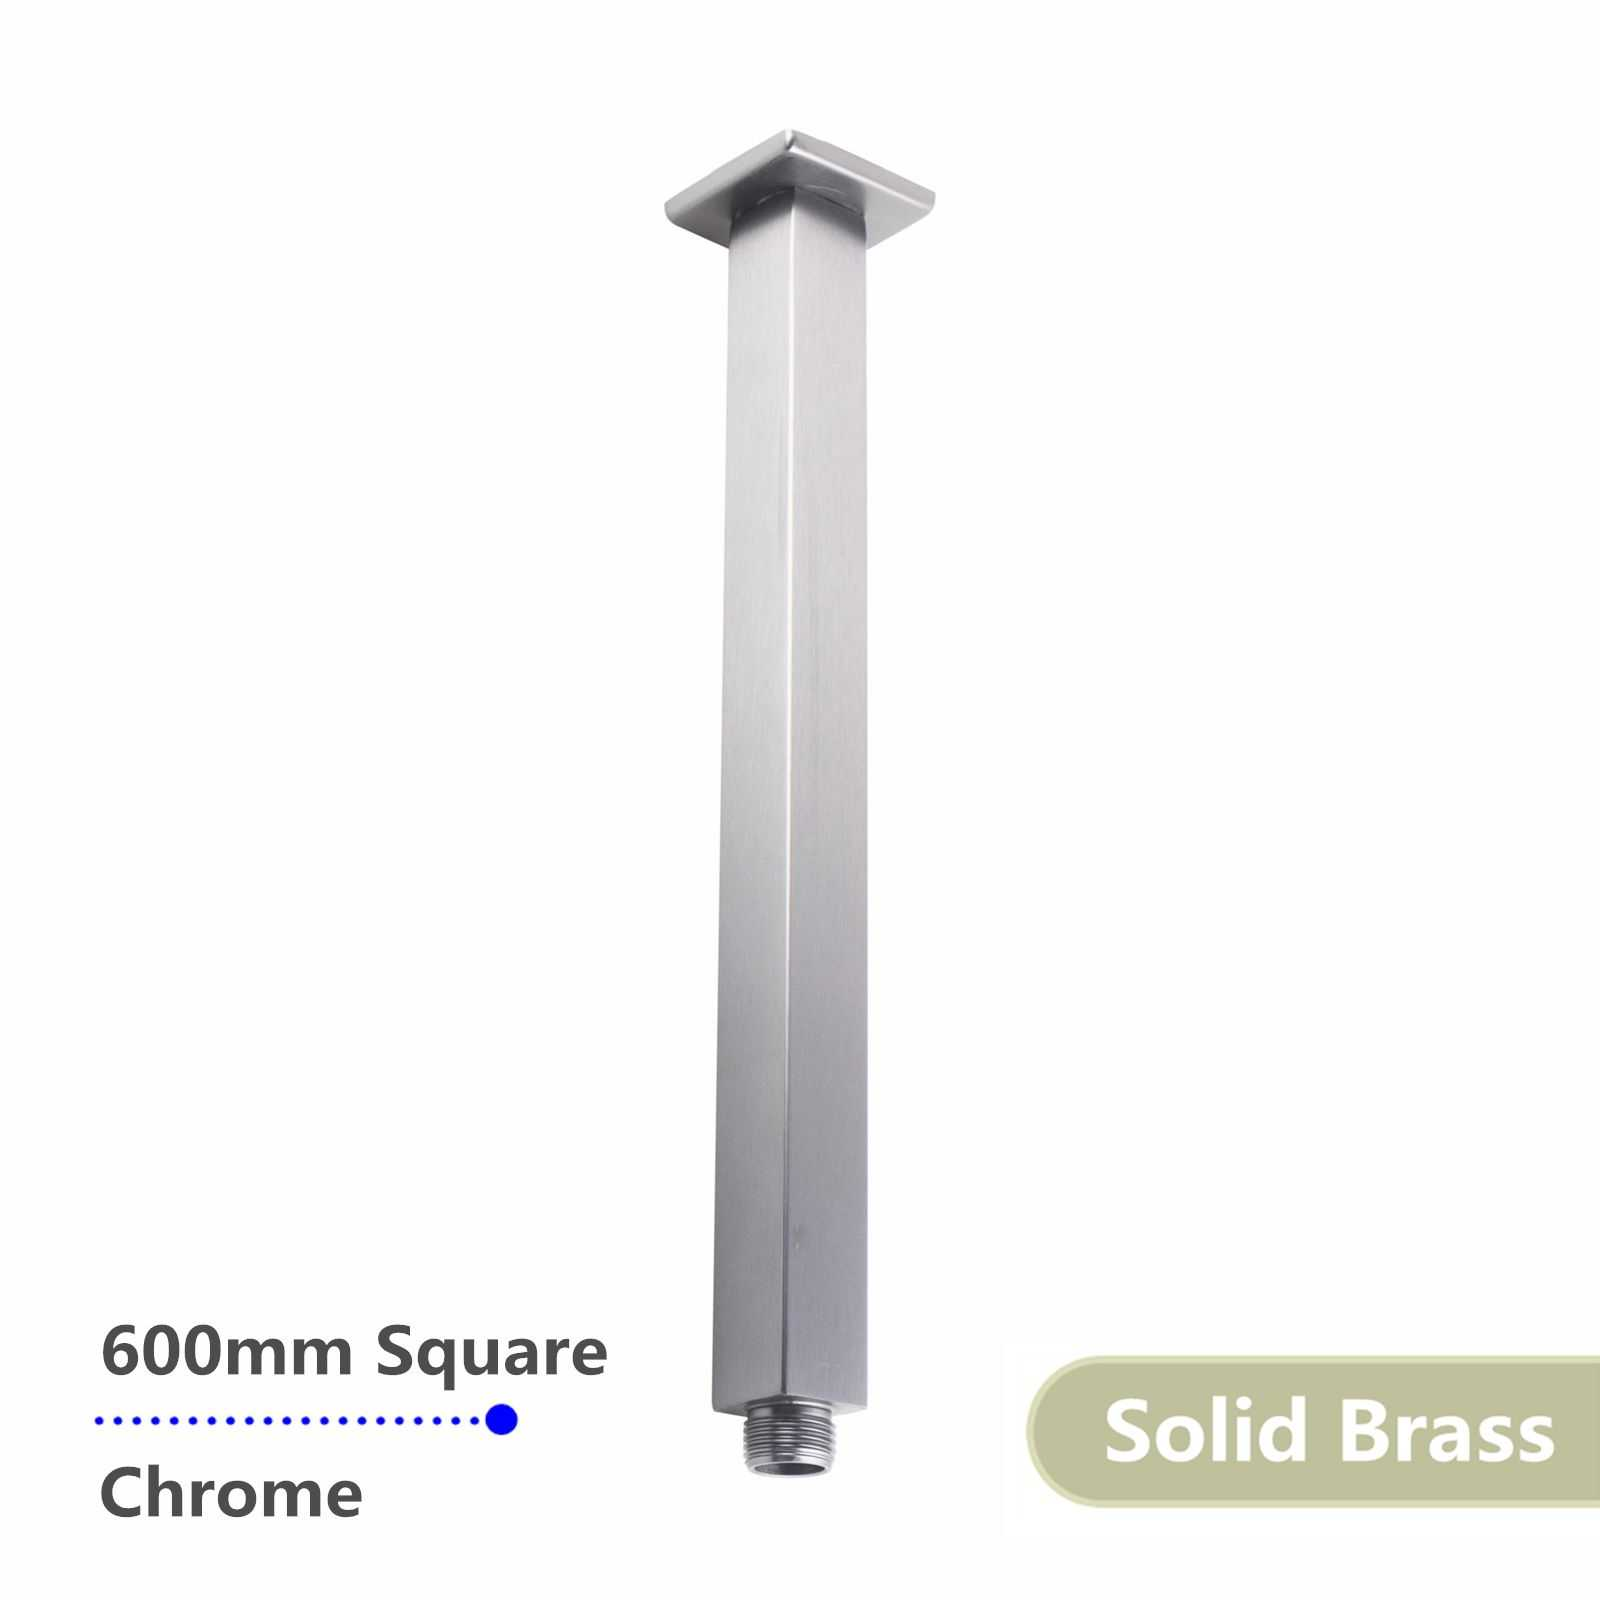 Square Chrome Ceiling Shower Arm 600mm